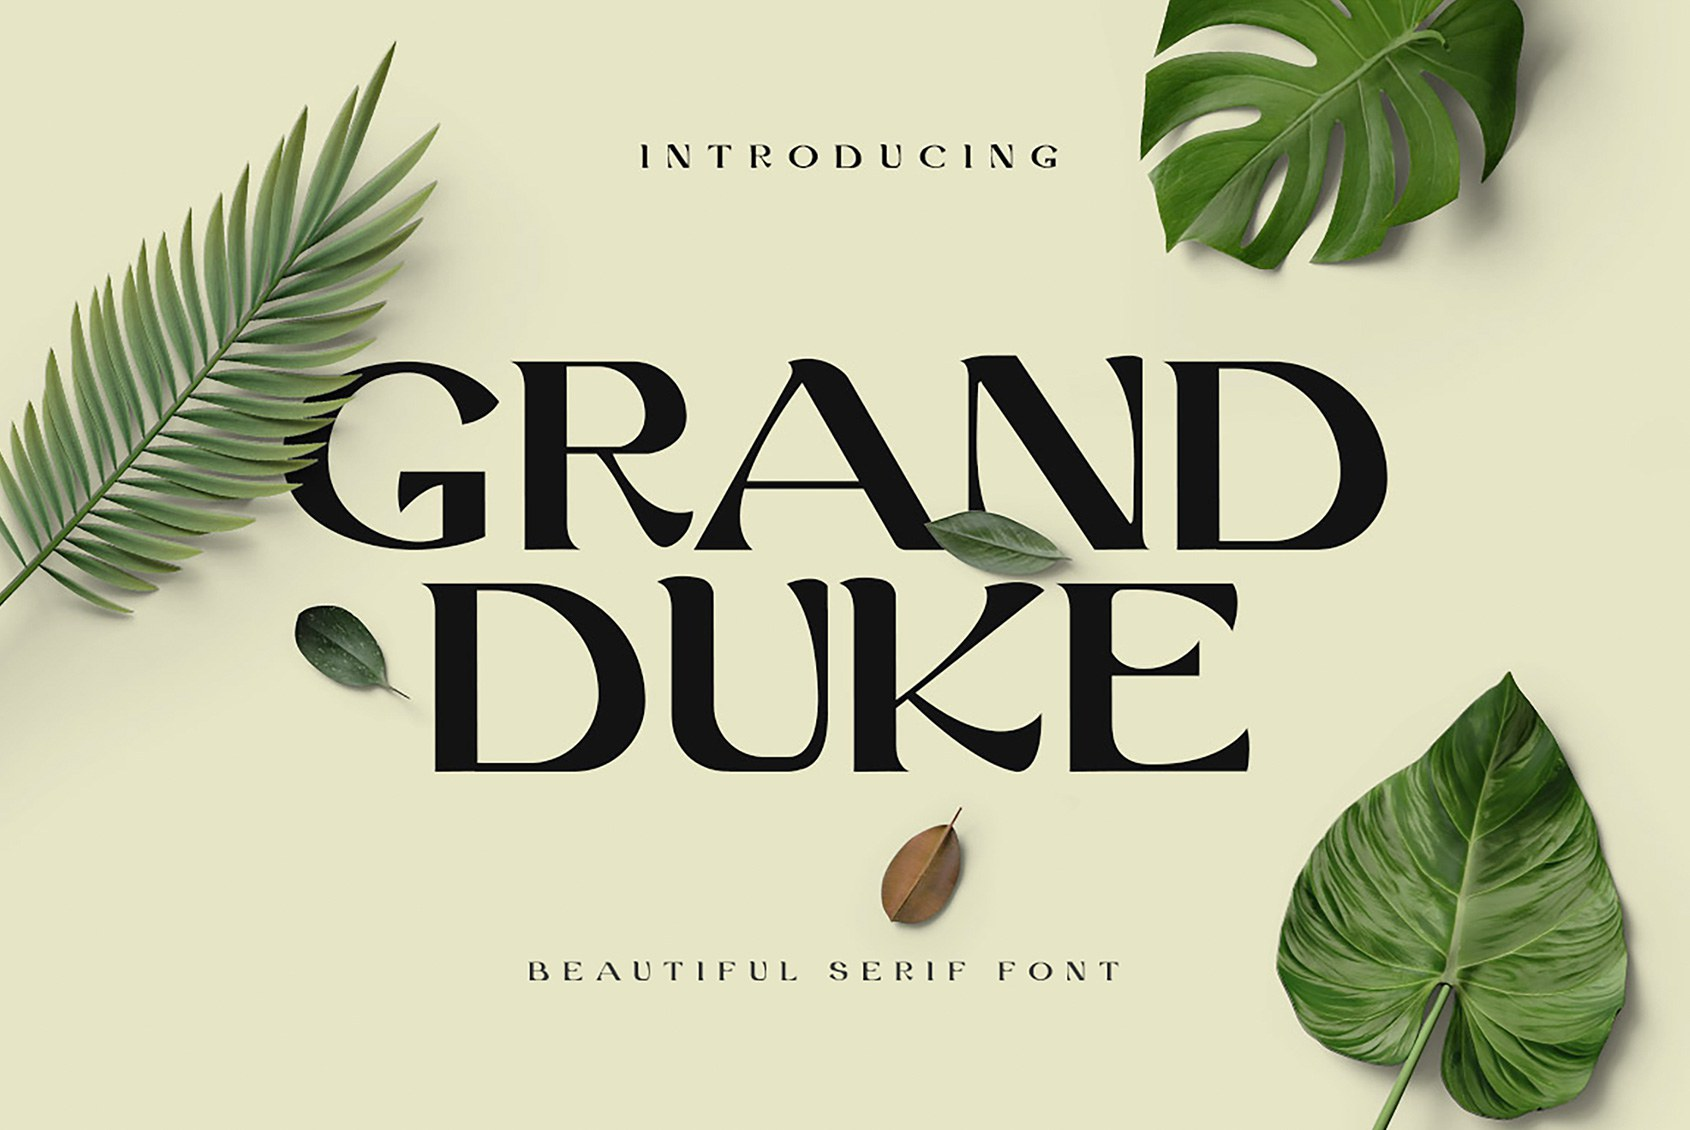 Stylish and Beautiful Serif Font